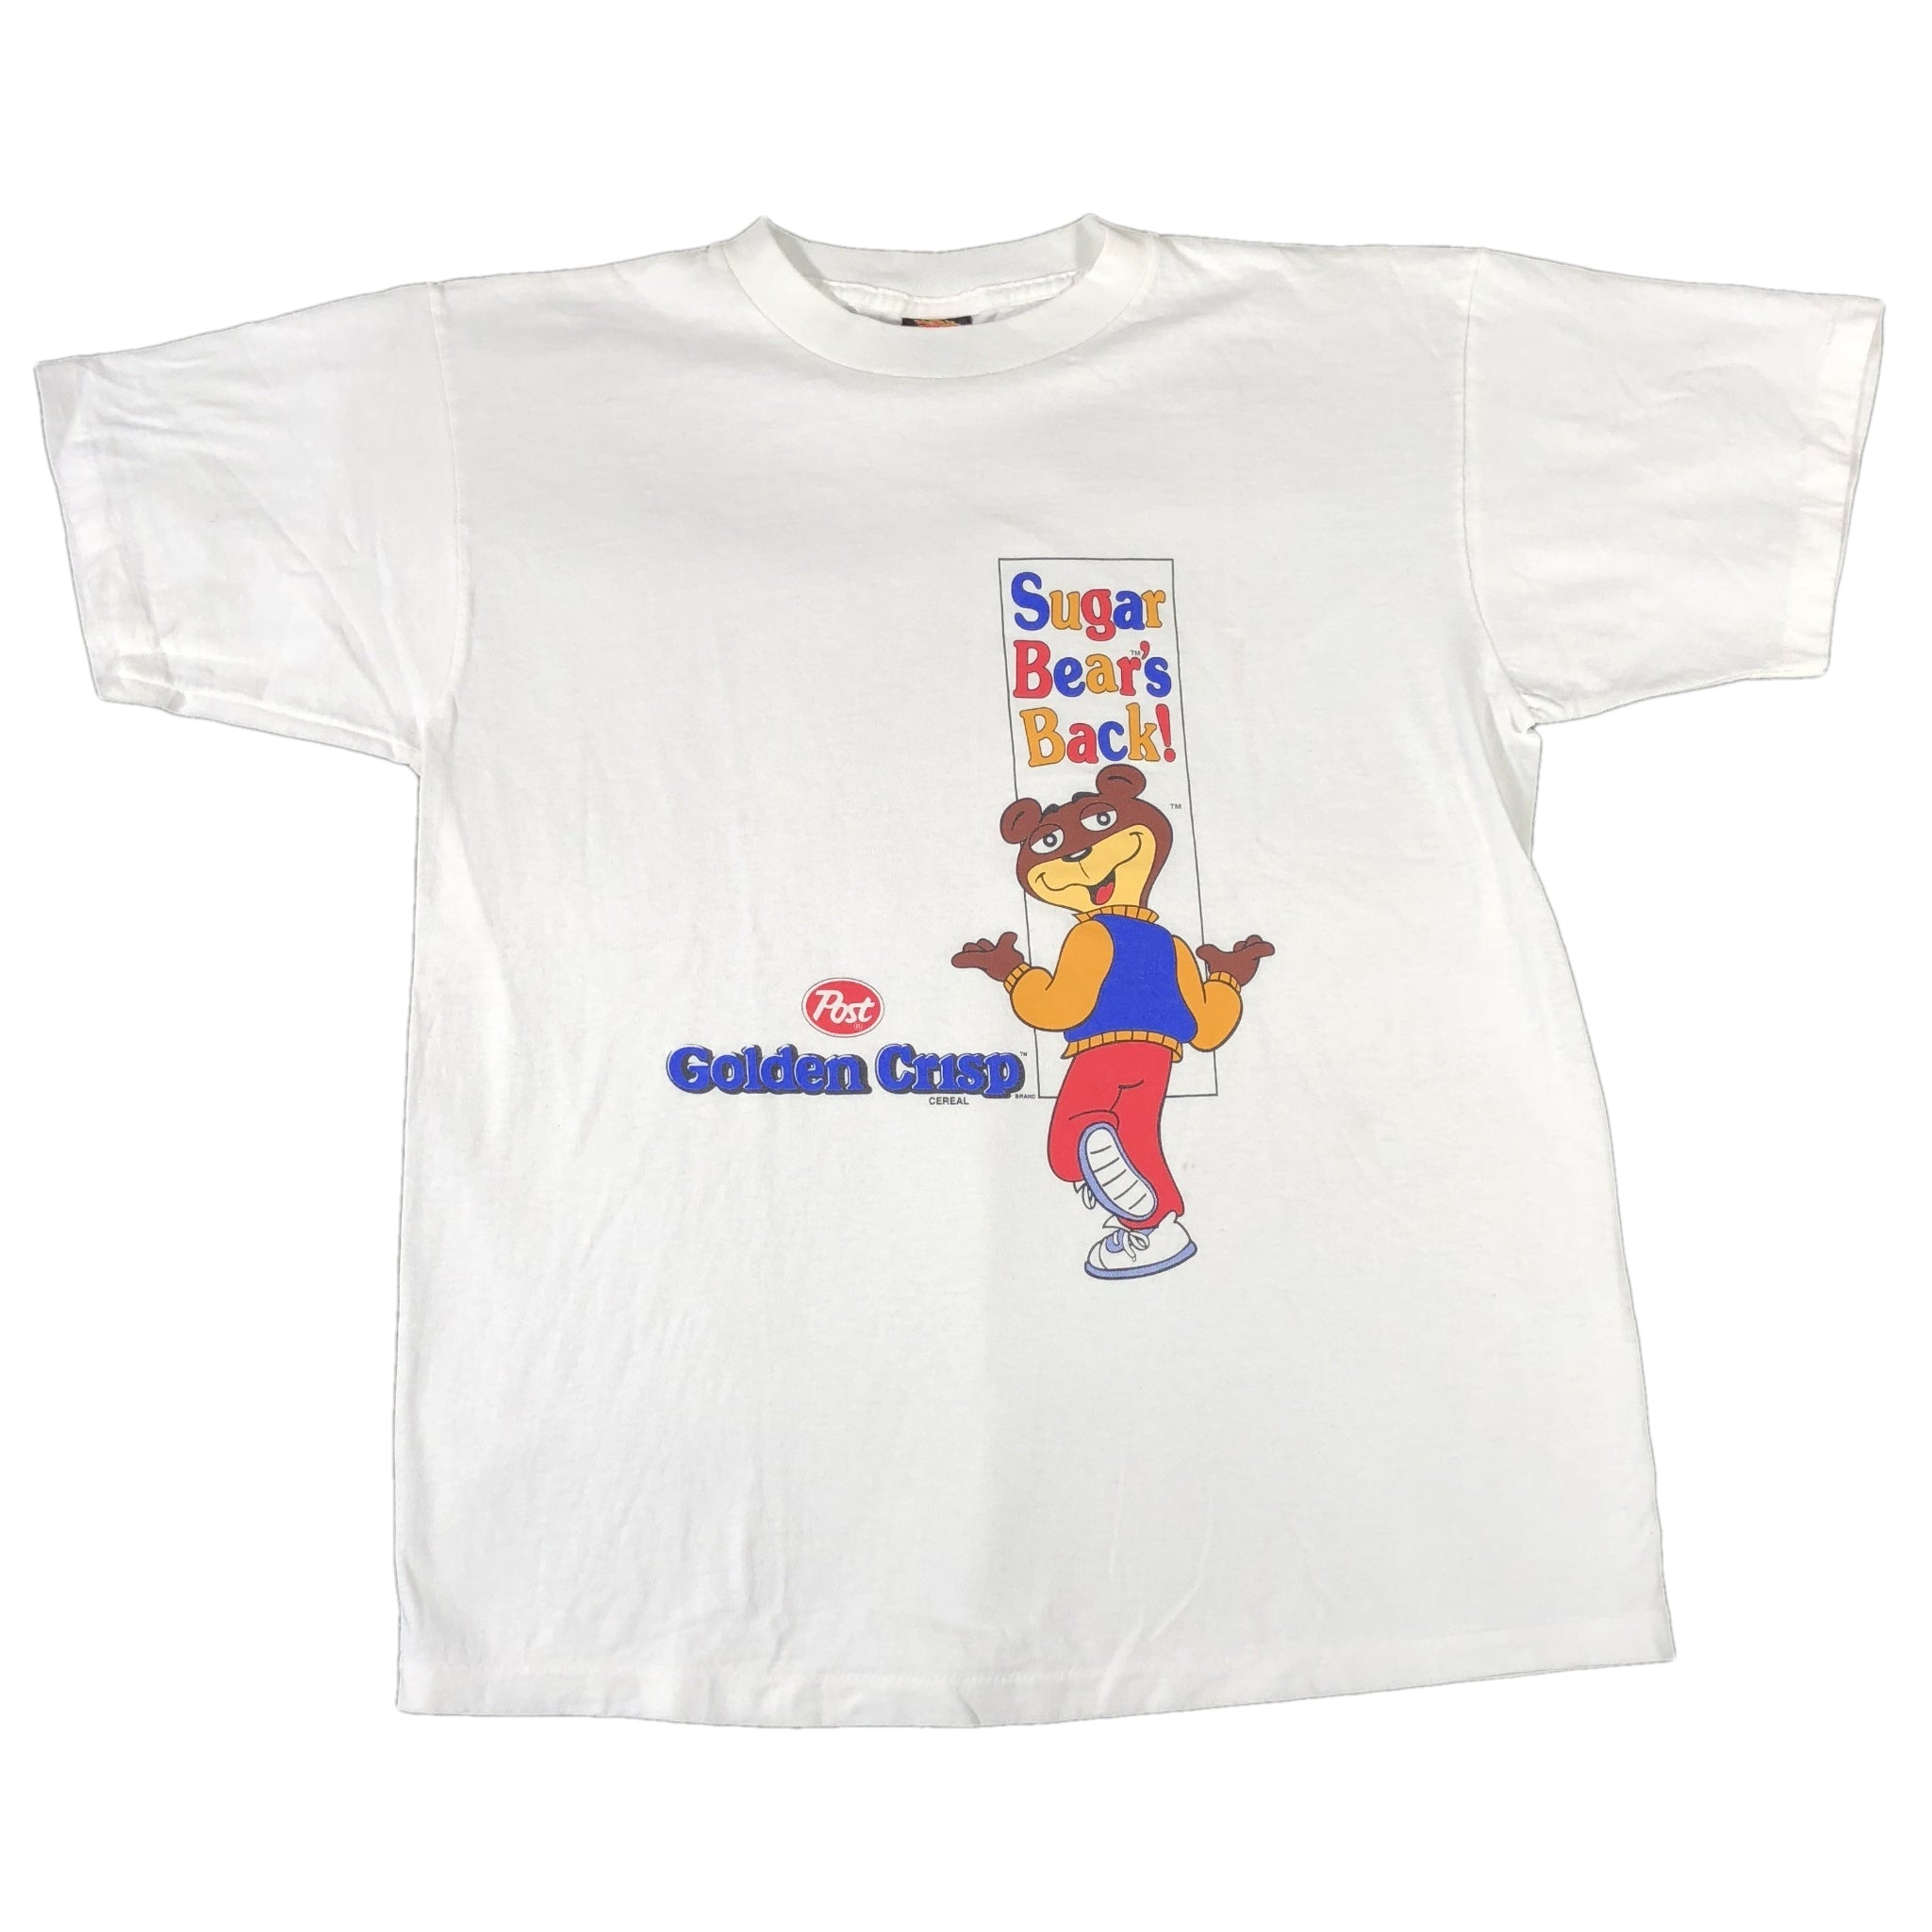 "Vintage Golden Crisp ""Sugar Bear's Back!"" T-Shirt"